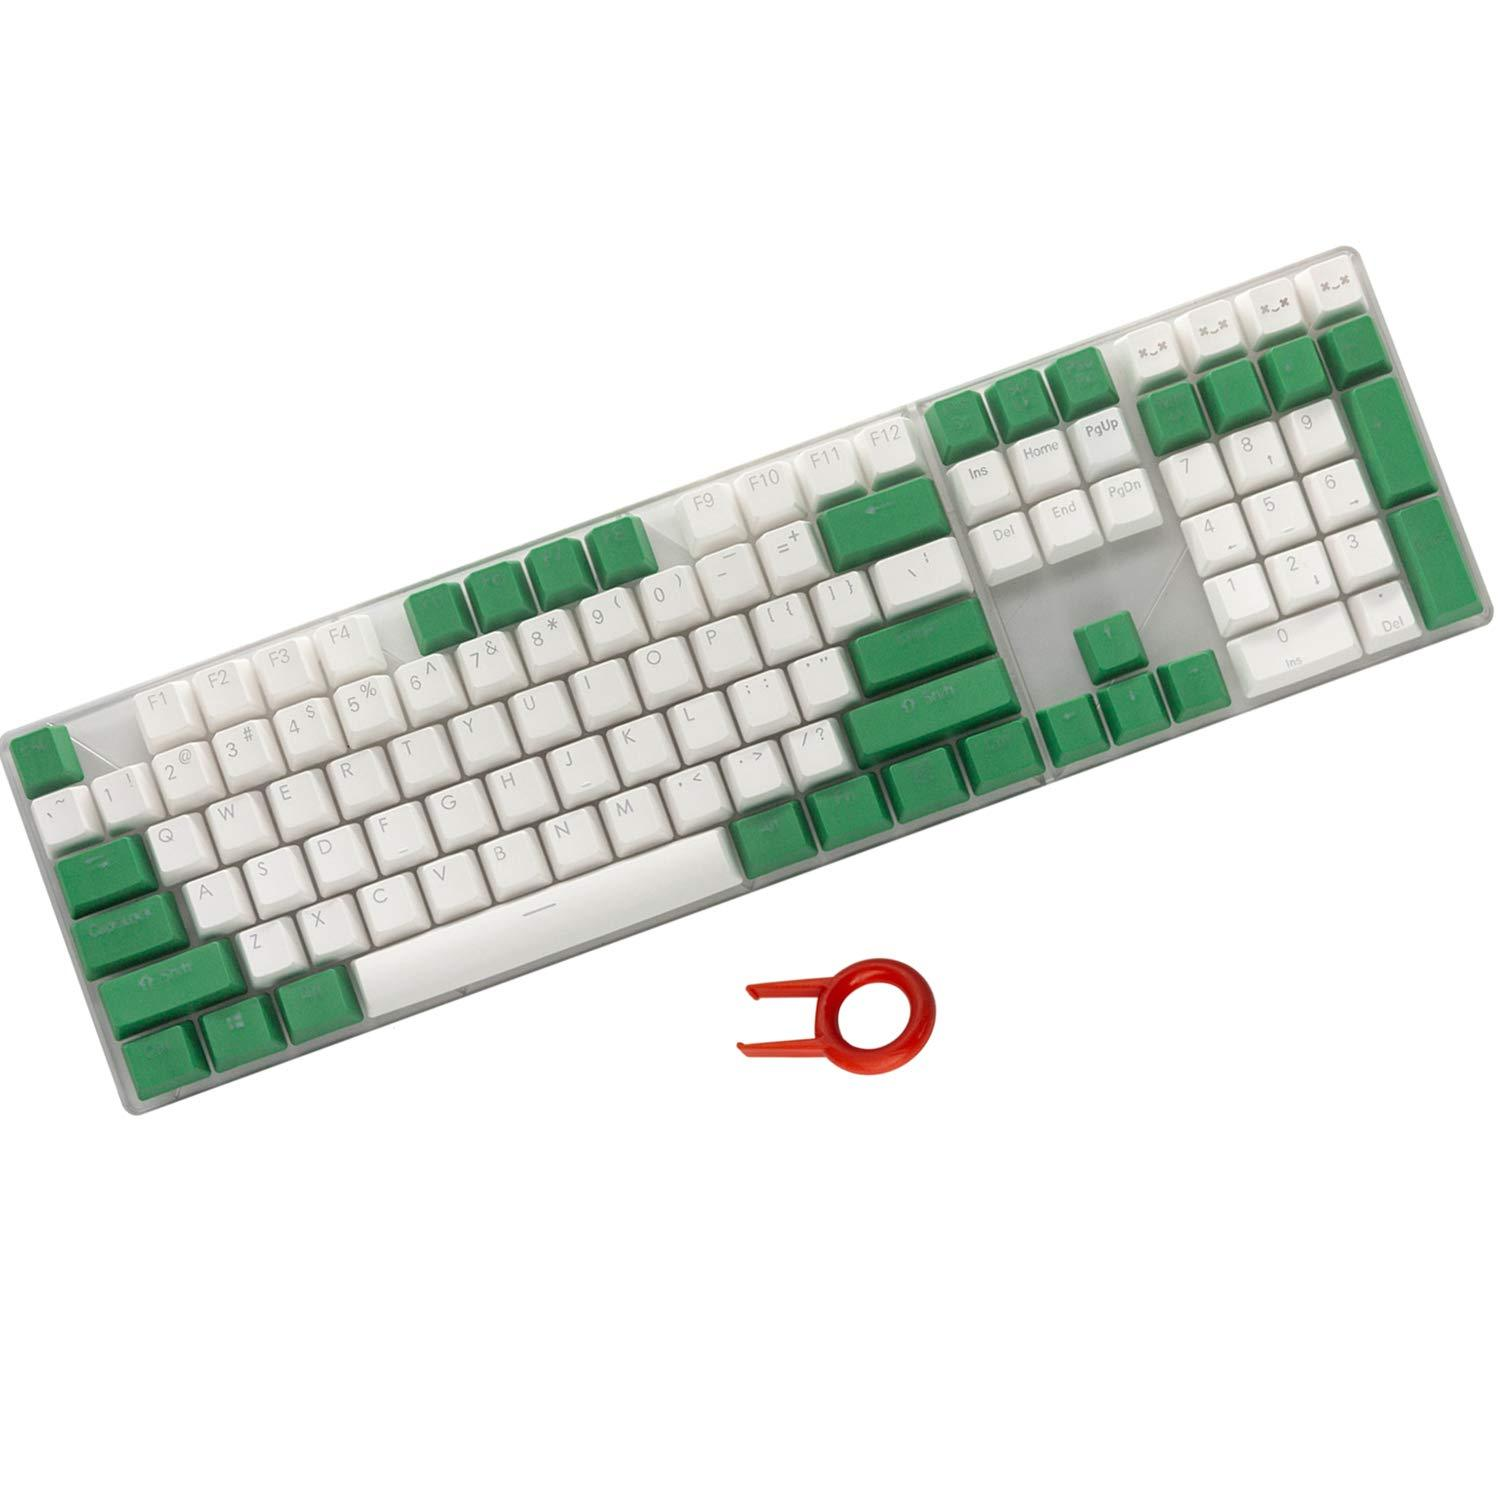 Happy Balls 108 Key PBT Cherry MX Keycaps - Green/White